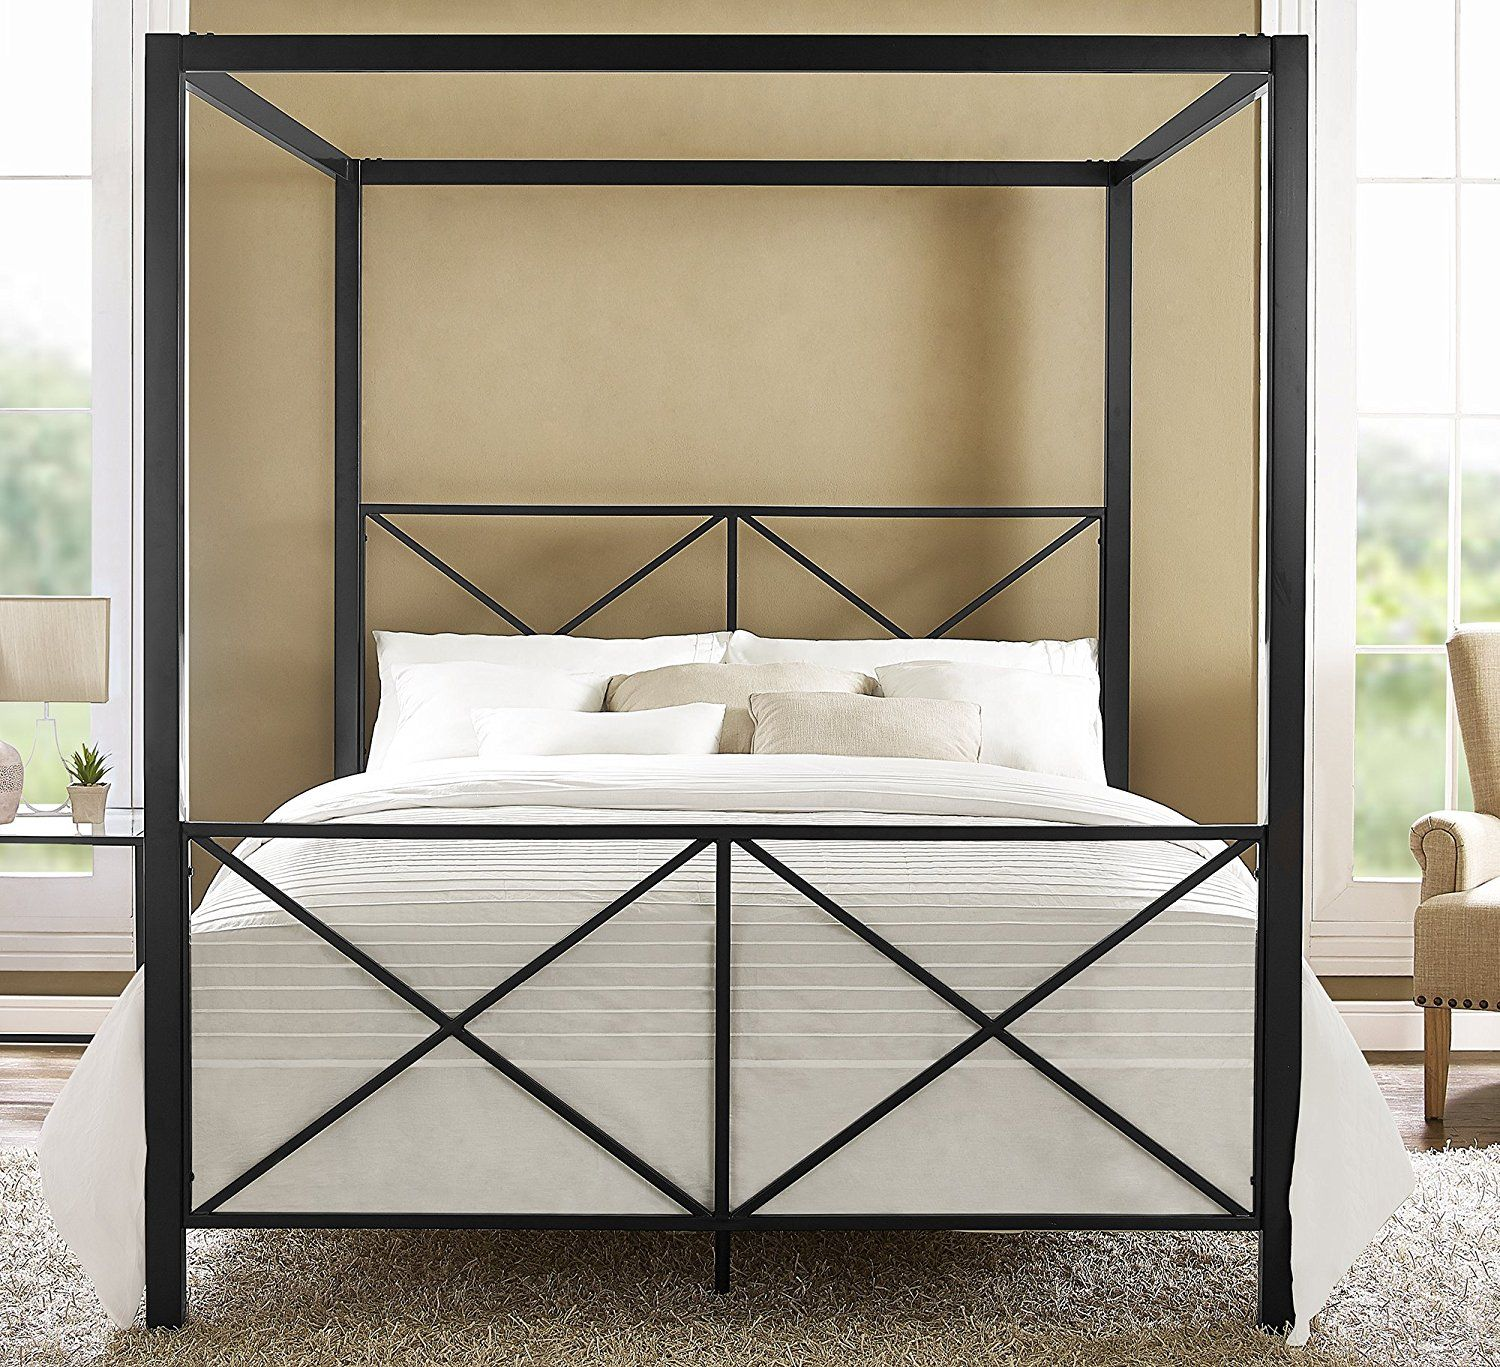 - Amazon.com: DHP Rosedale Metal Canopy Bed, Queen Size - Black